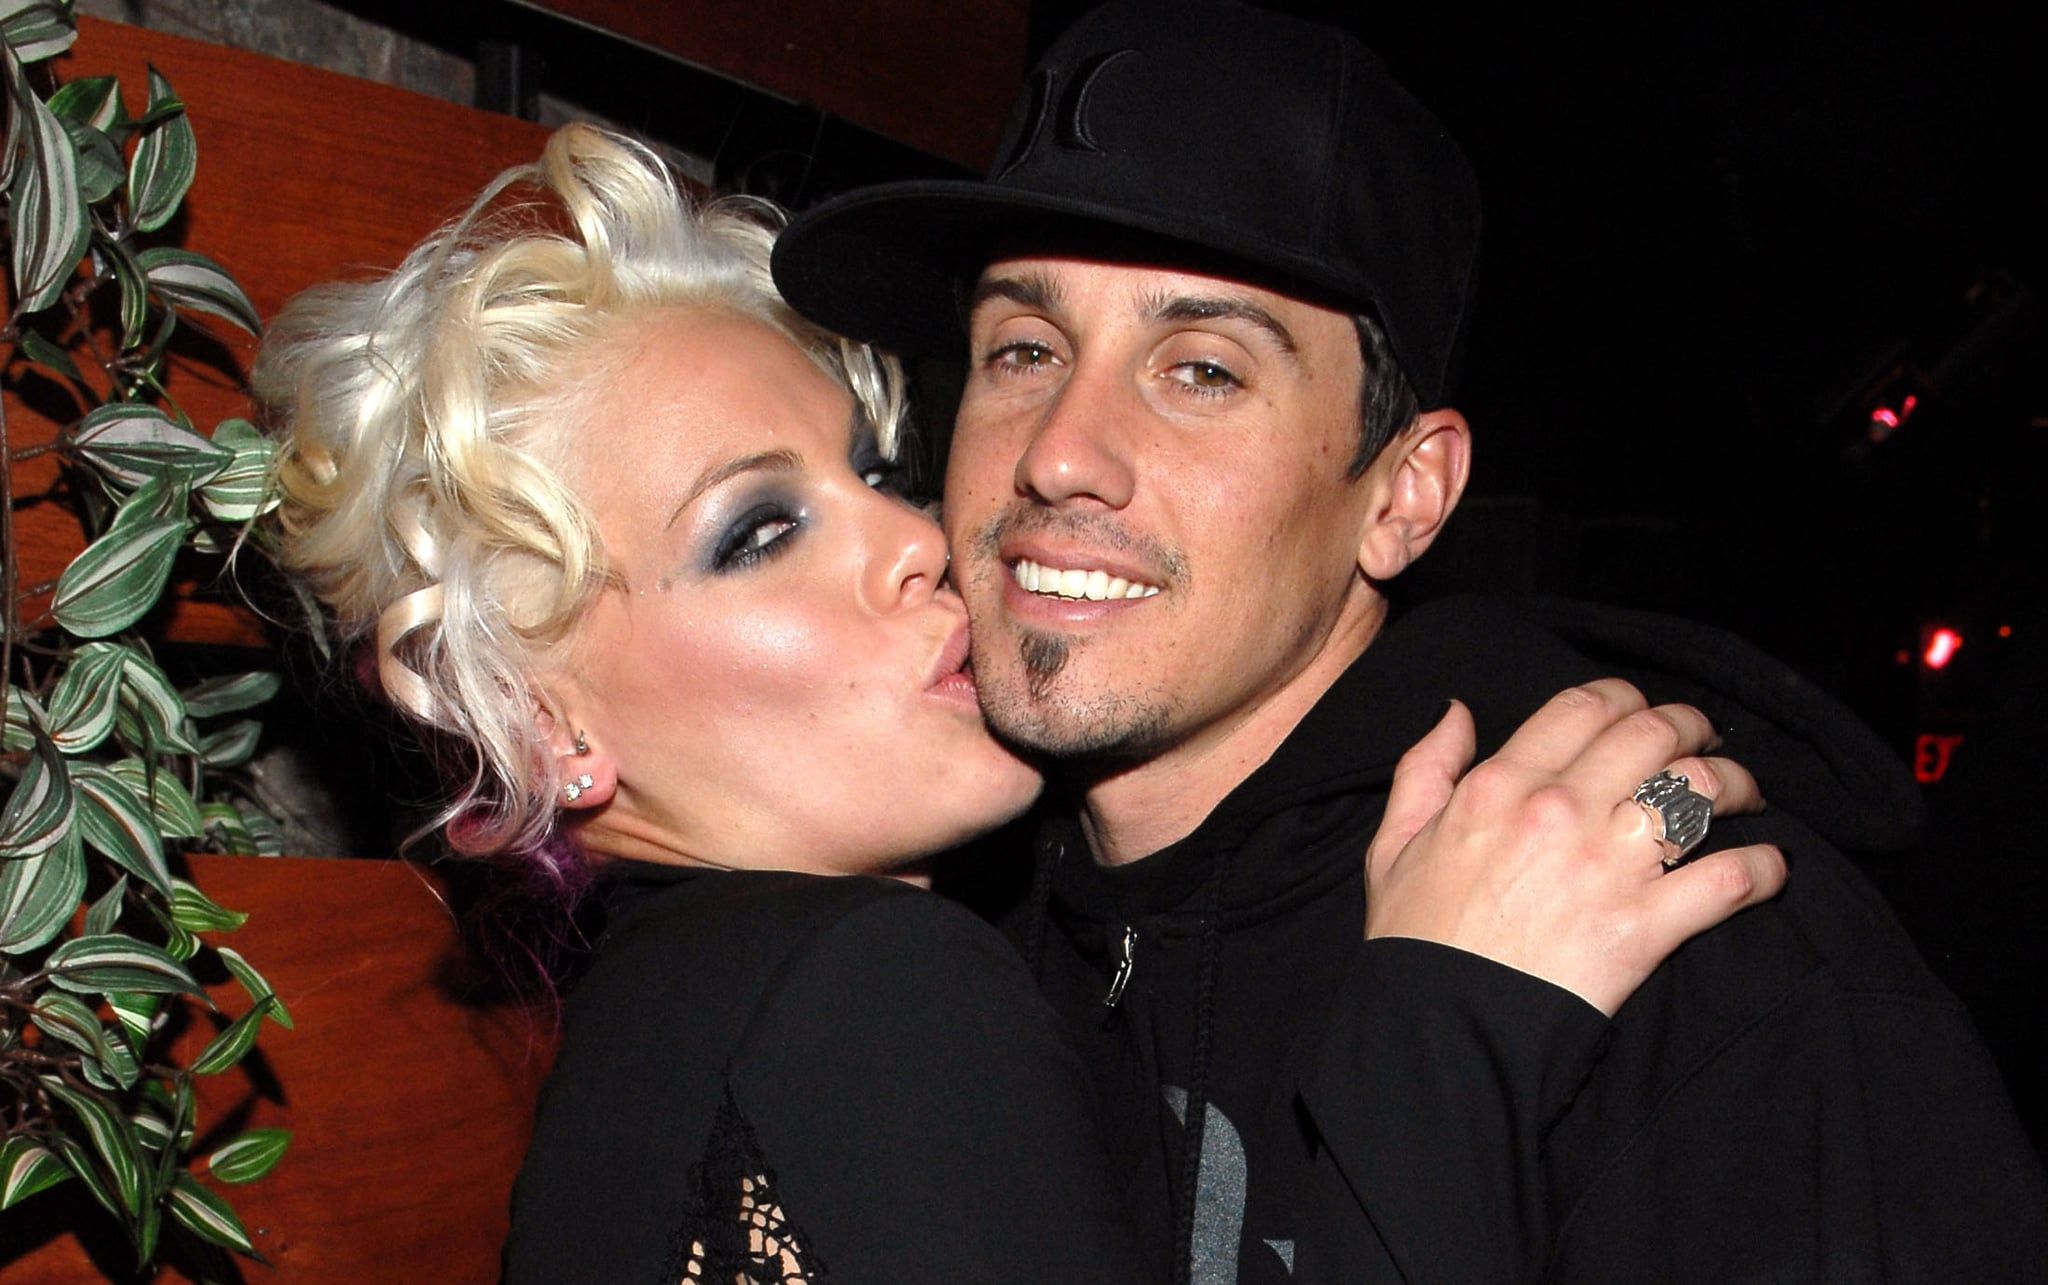 Happily married husband and wife: Carey Hart and Pink (kiss)